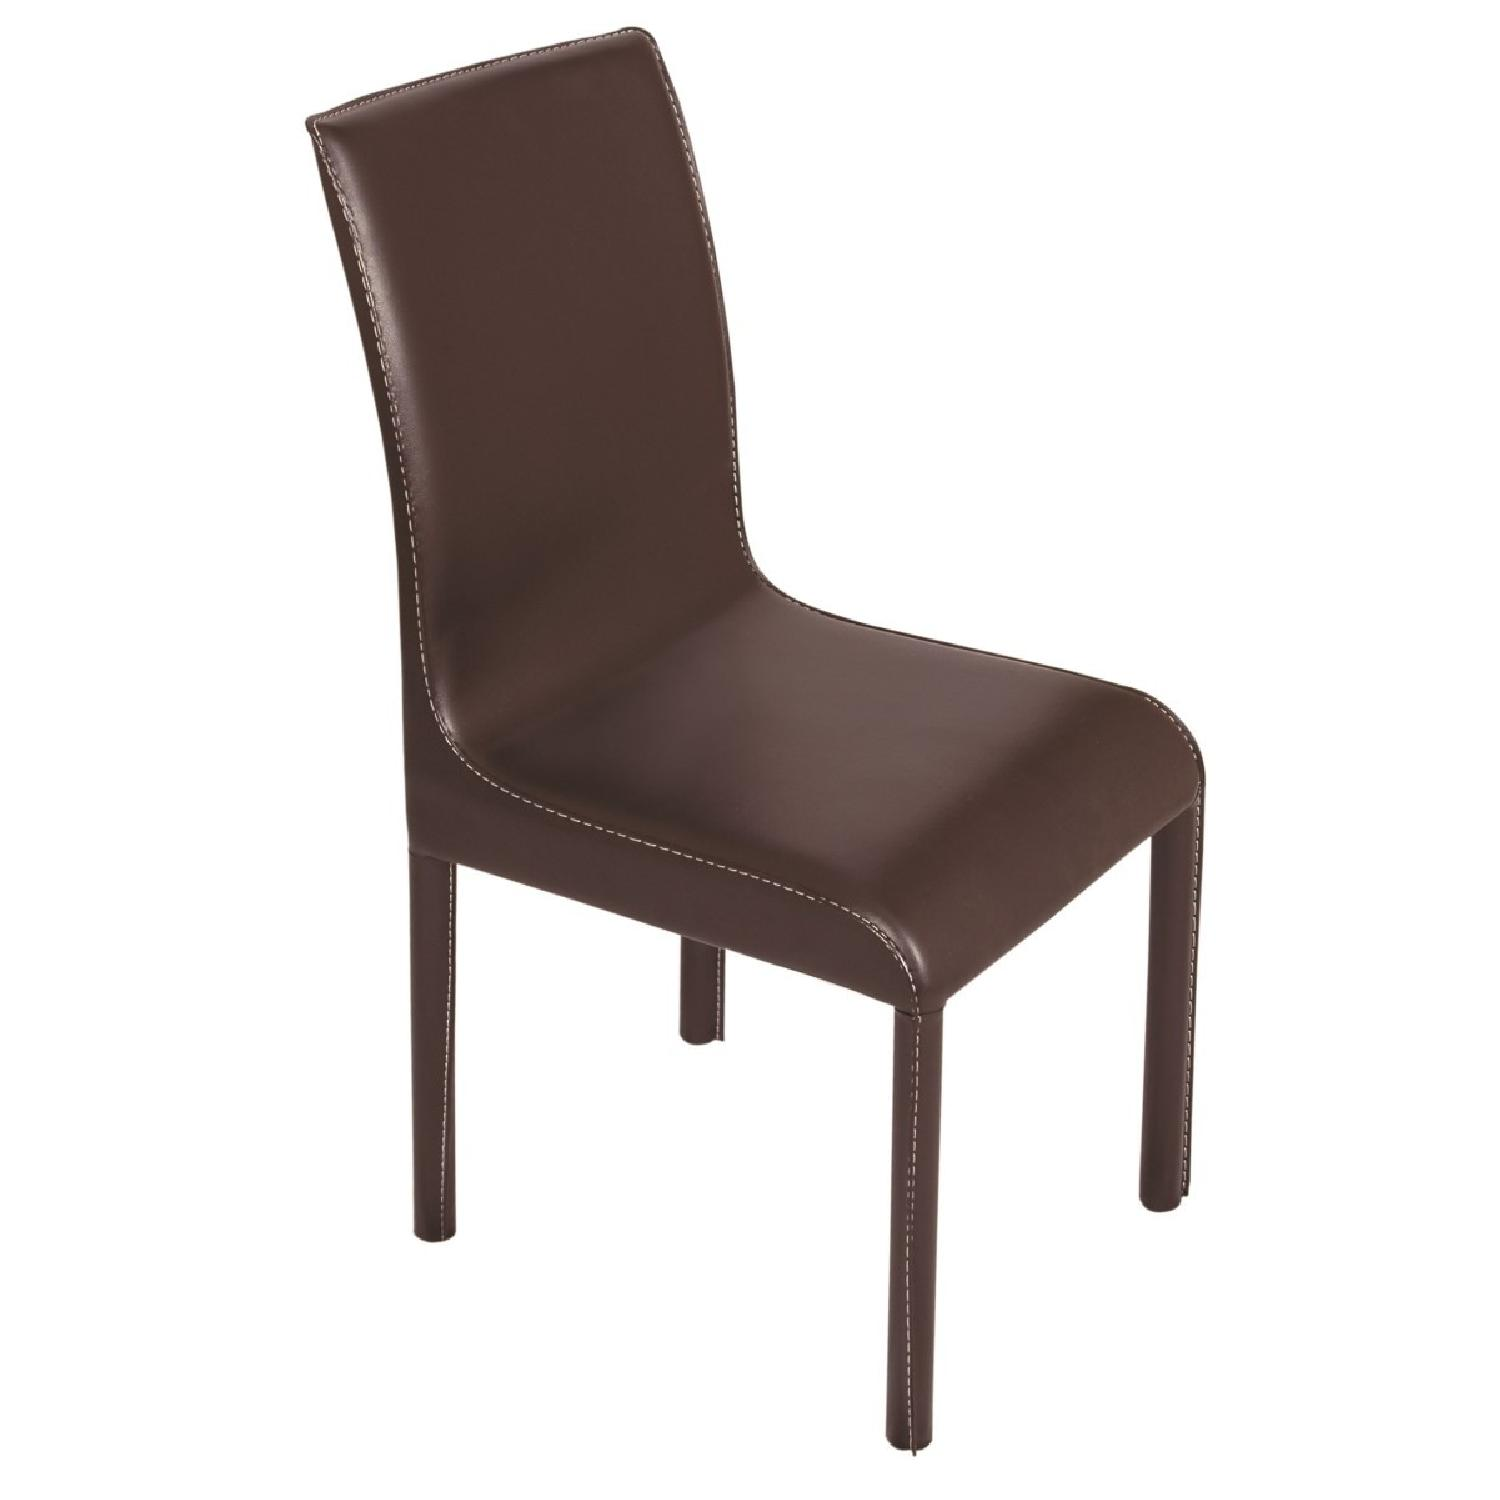 Modern Dining Chair w/ Metal Frame Upholstered in Brown ...